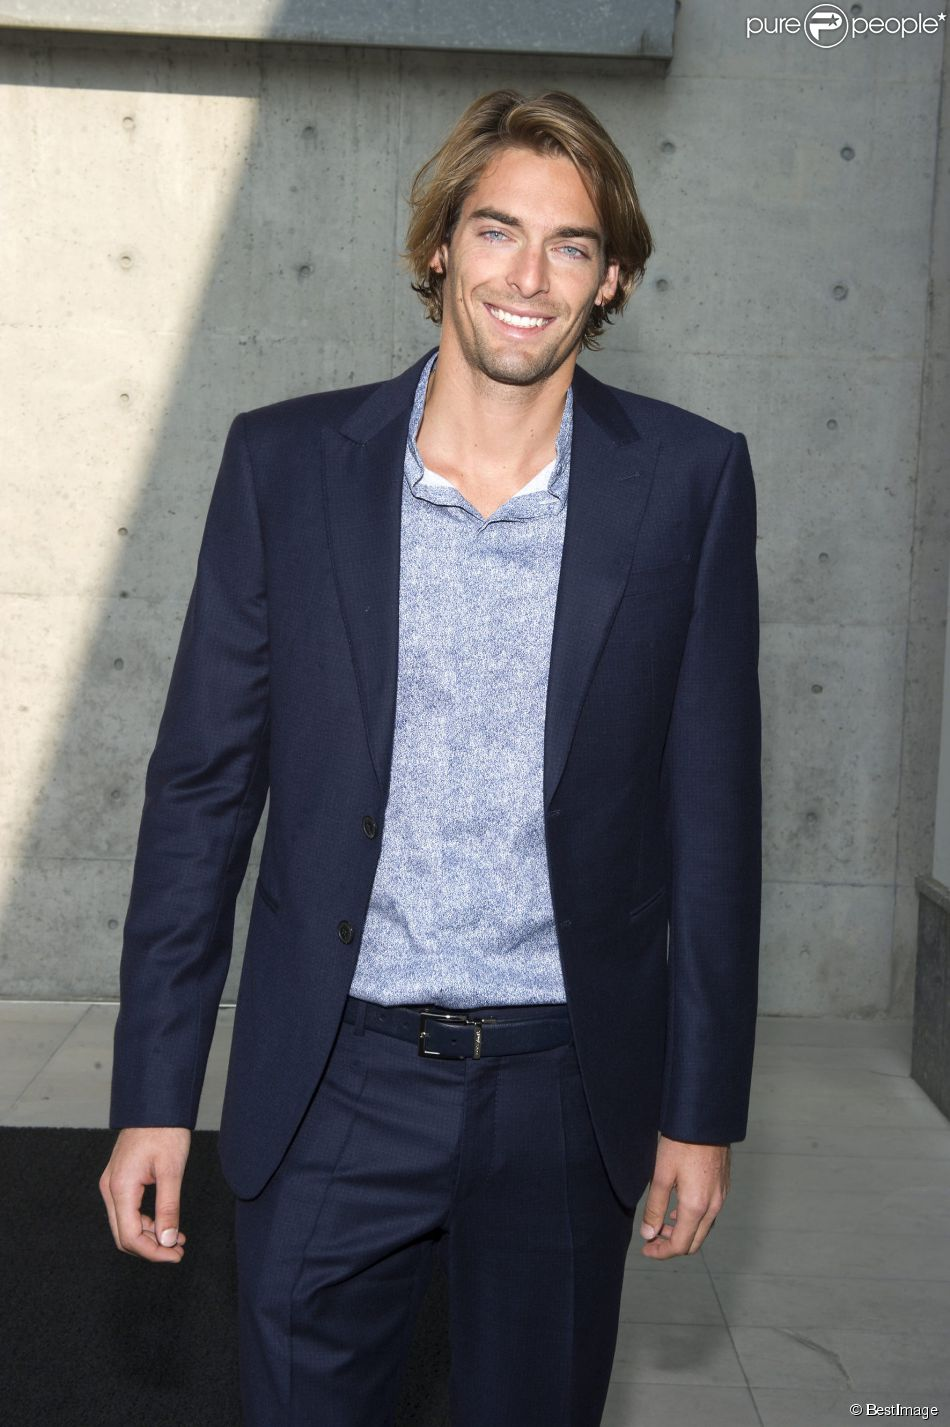 Camille Lacourt au défilé de mode Giorgio Armani, collection printemps-été 2014, lors de la fashion week de Milan, le 23 septembre 2013